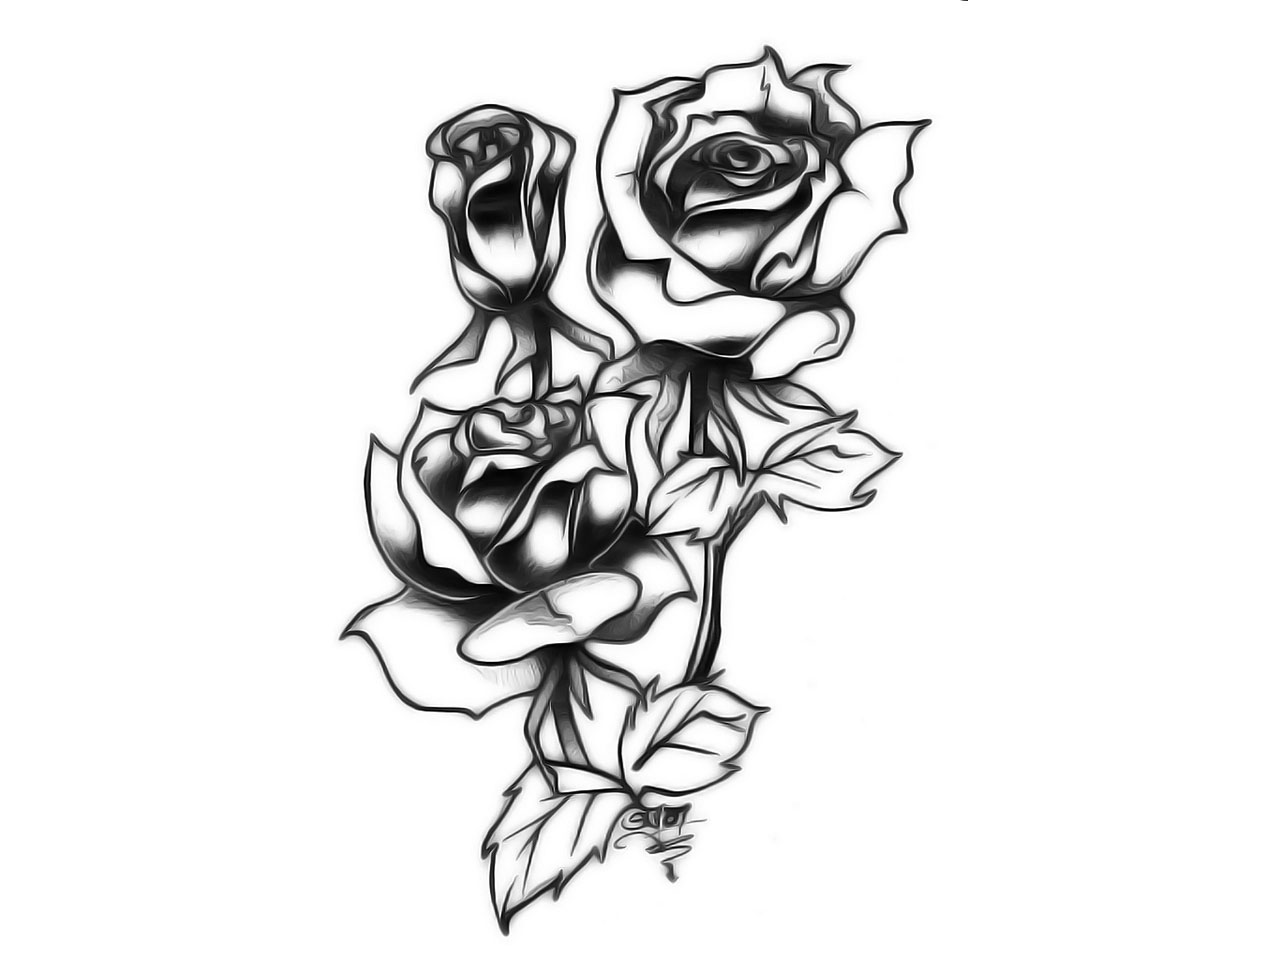 1280x960 Dongetrabi Black And White Red Rose Tattoo Images